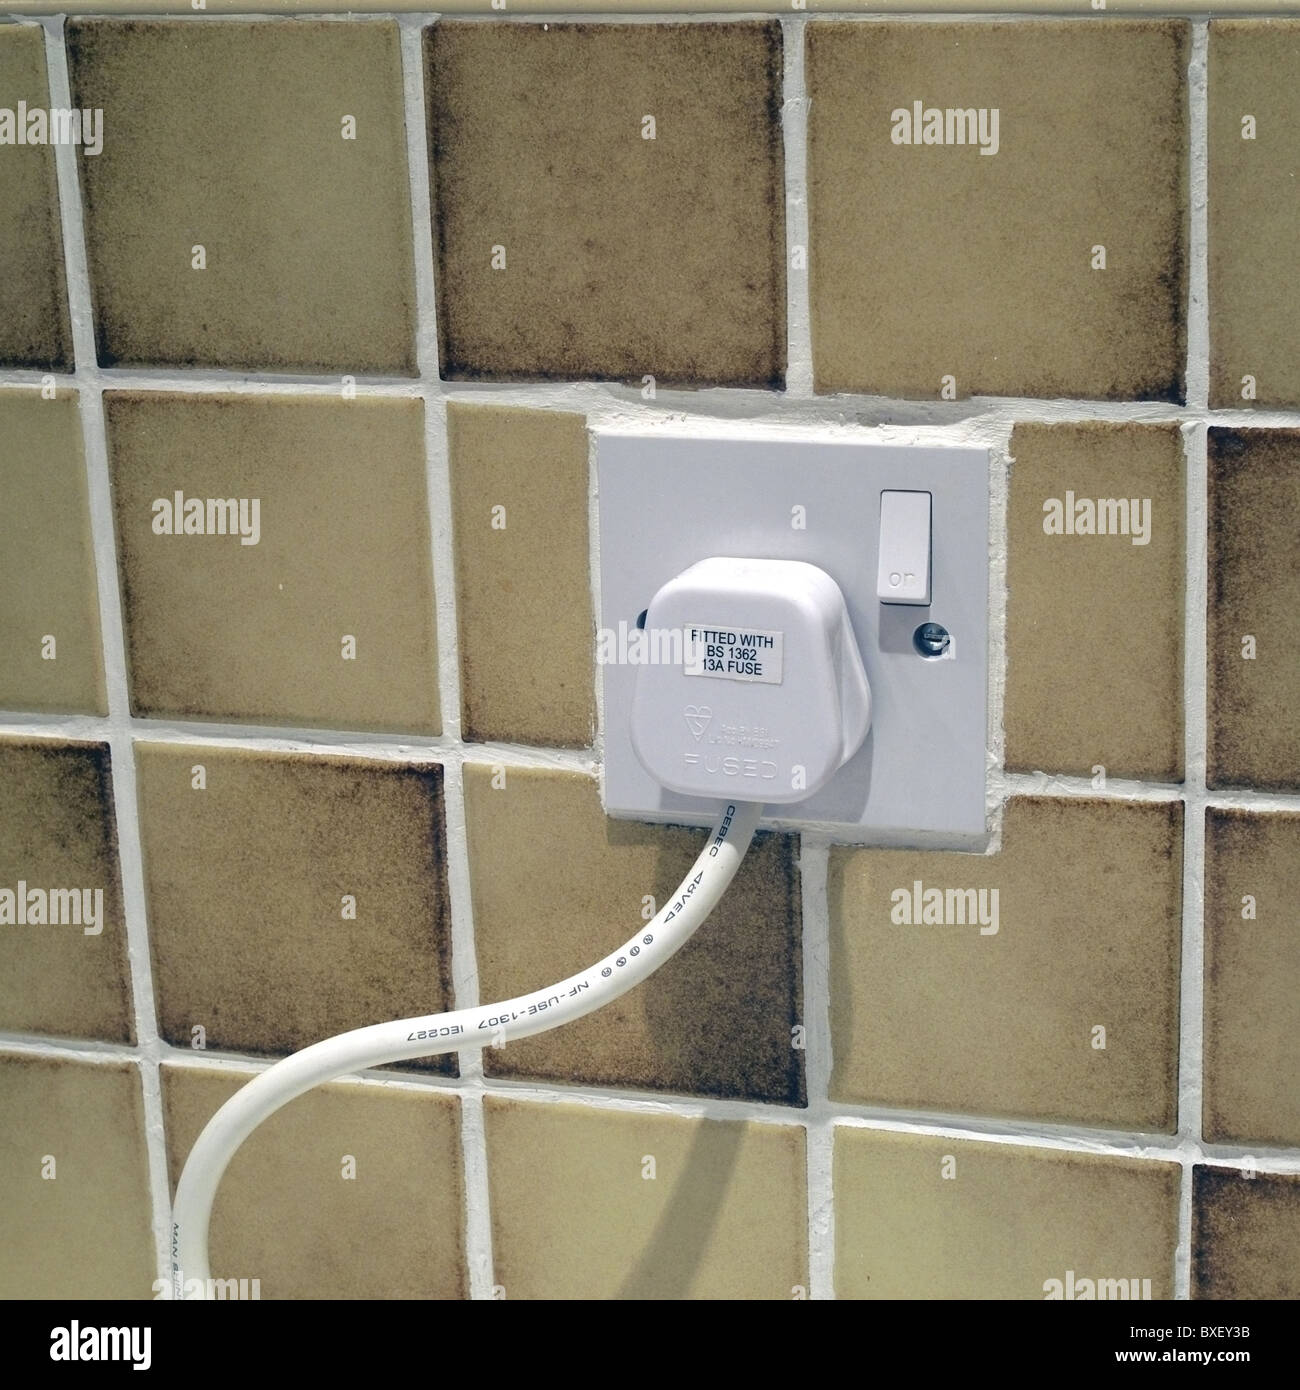 3 Pin Plug Stock Photos Images Alamy Wiring A Wall Socket South Africa And Three Fused Switched Off Uk Image